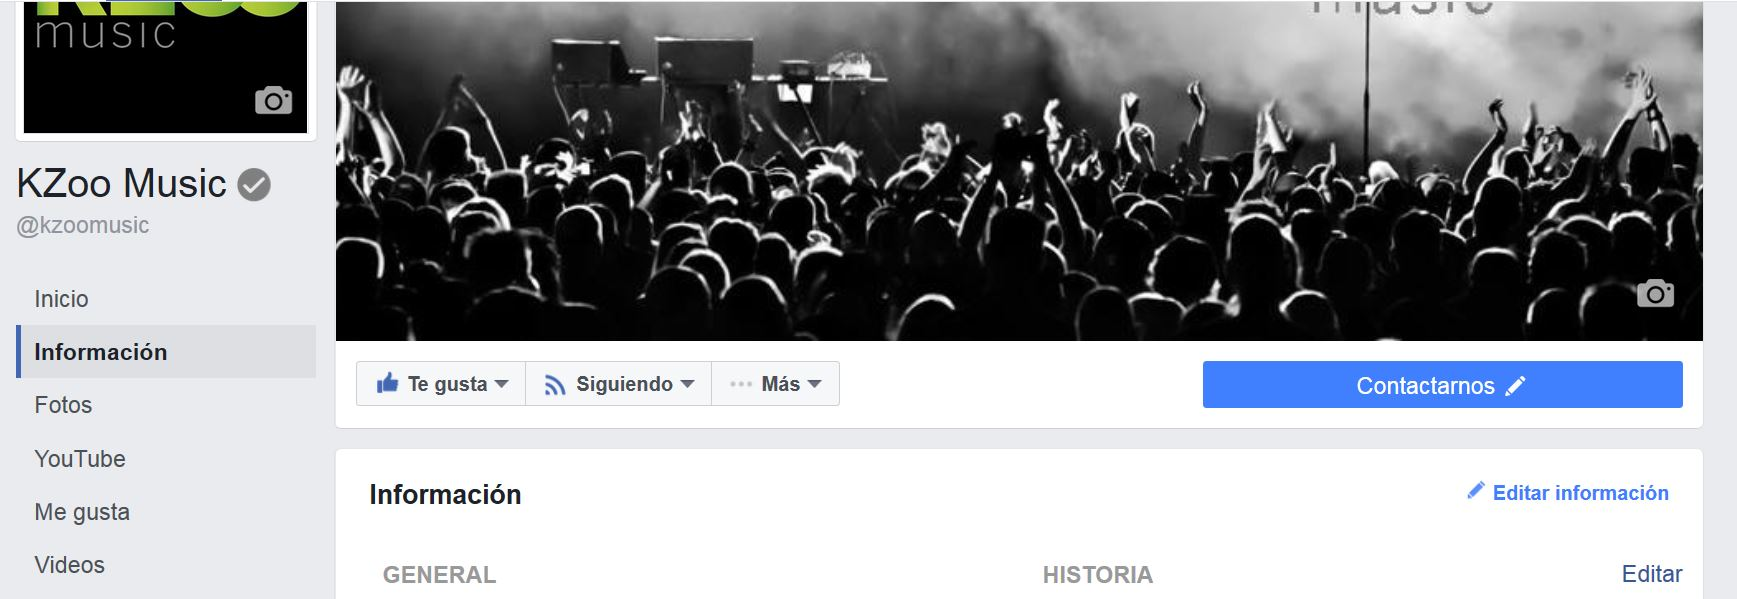 Facebook consejos de marketing digital por KZoo Music